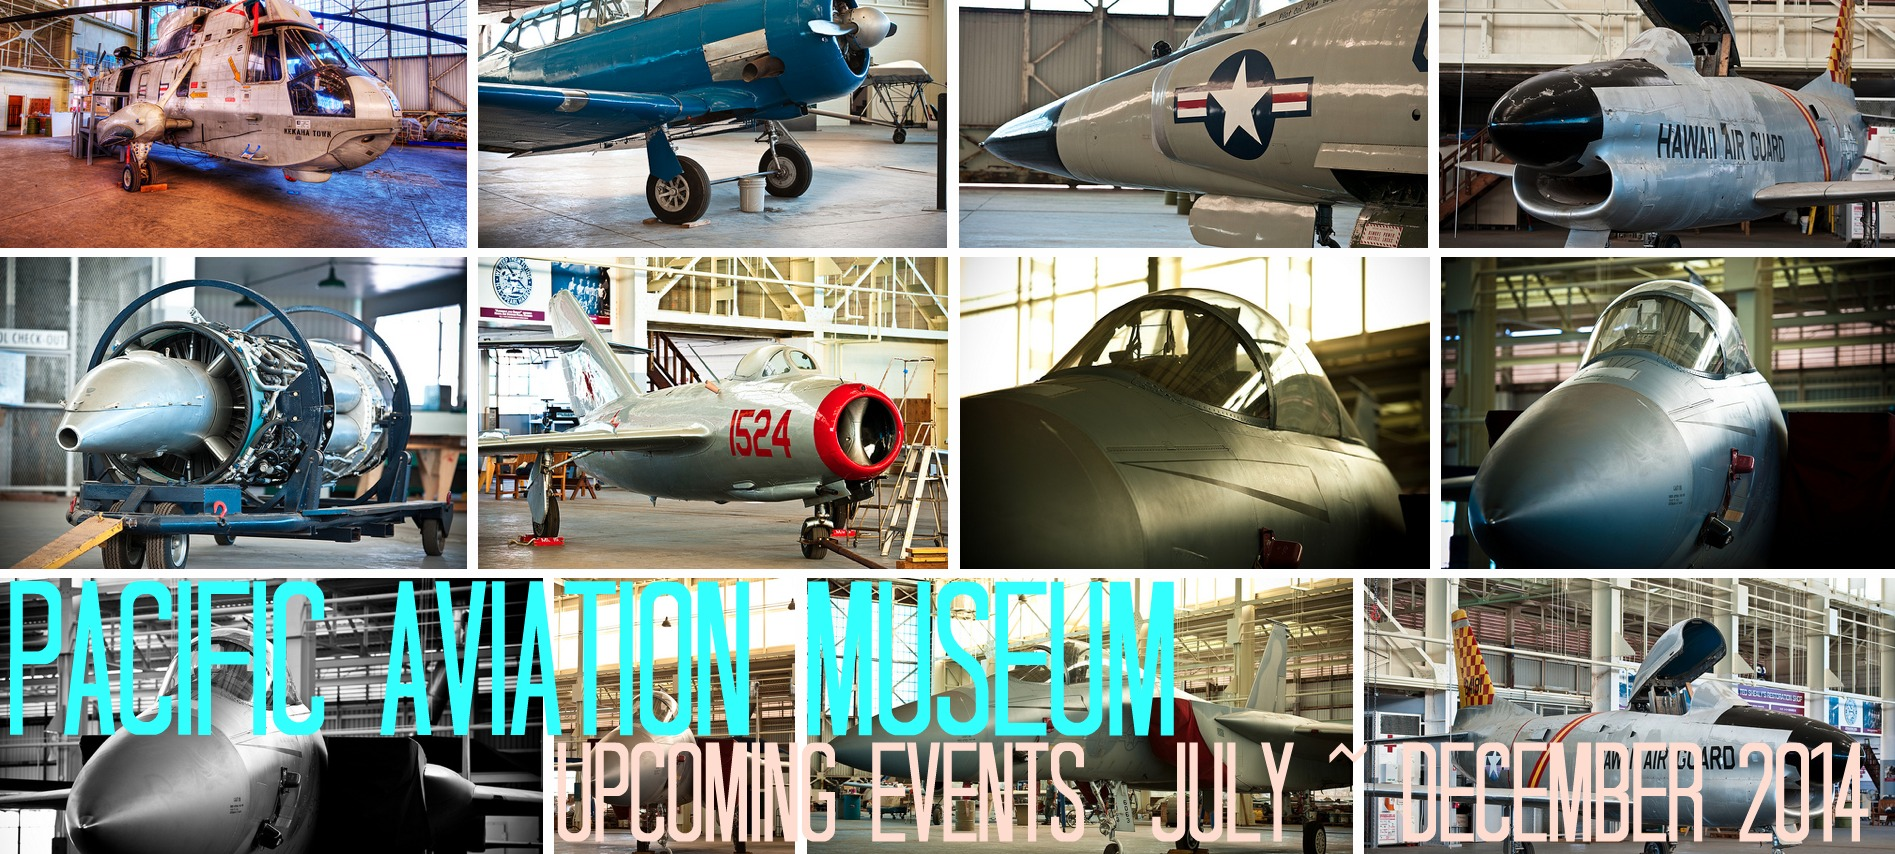 Upcoming Events At Pacific Aviation Museum Pearl Harbor July ~ December 2014